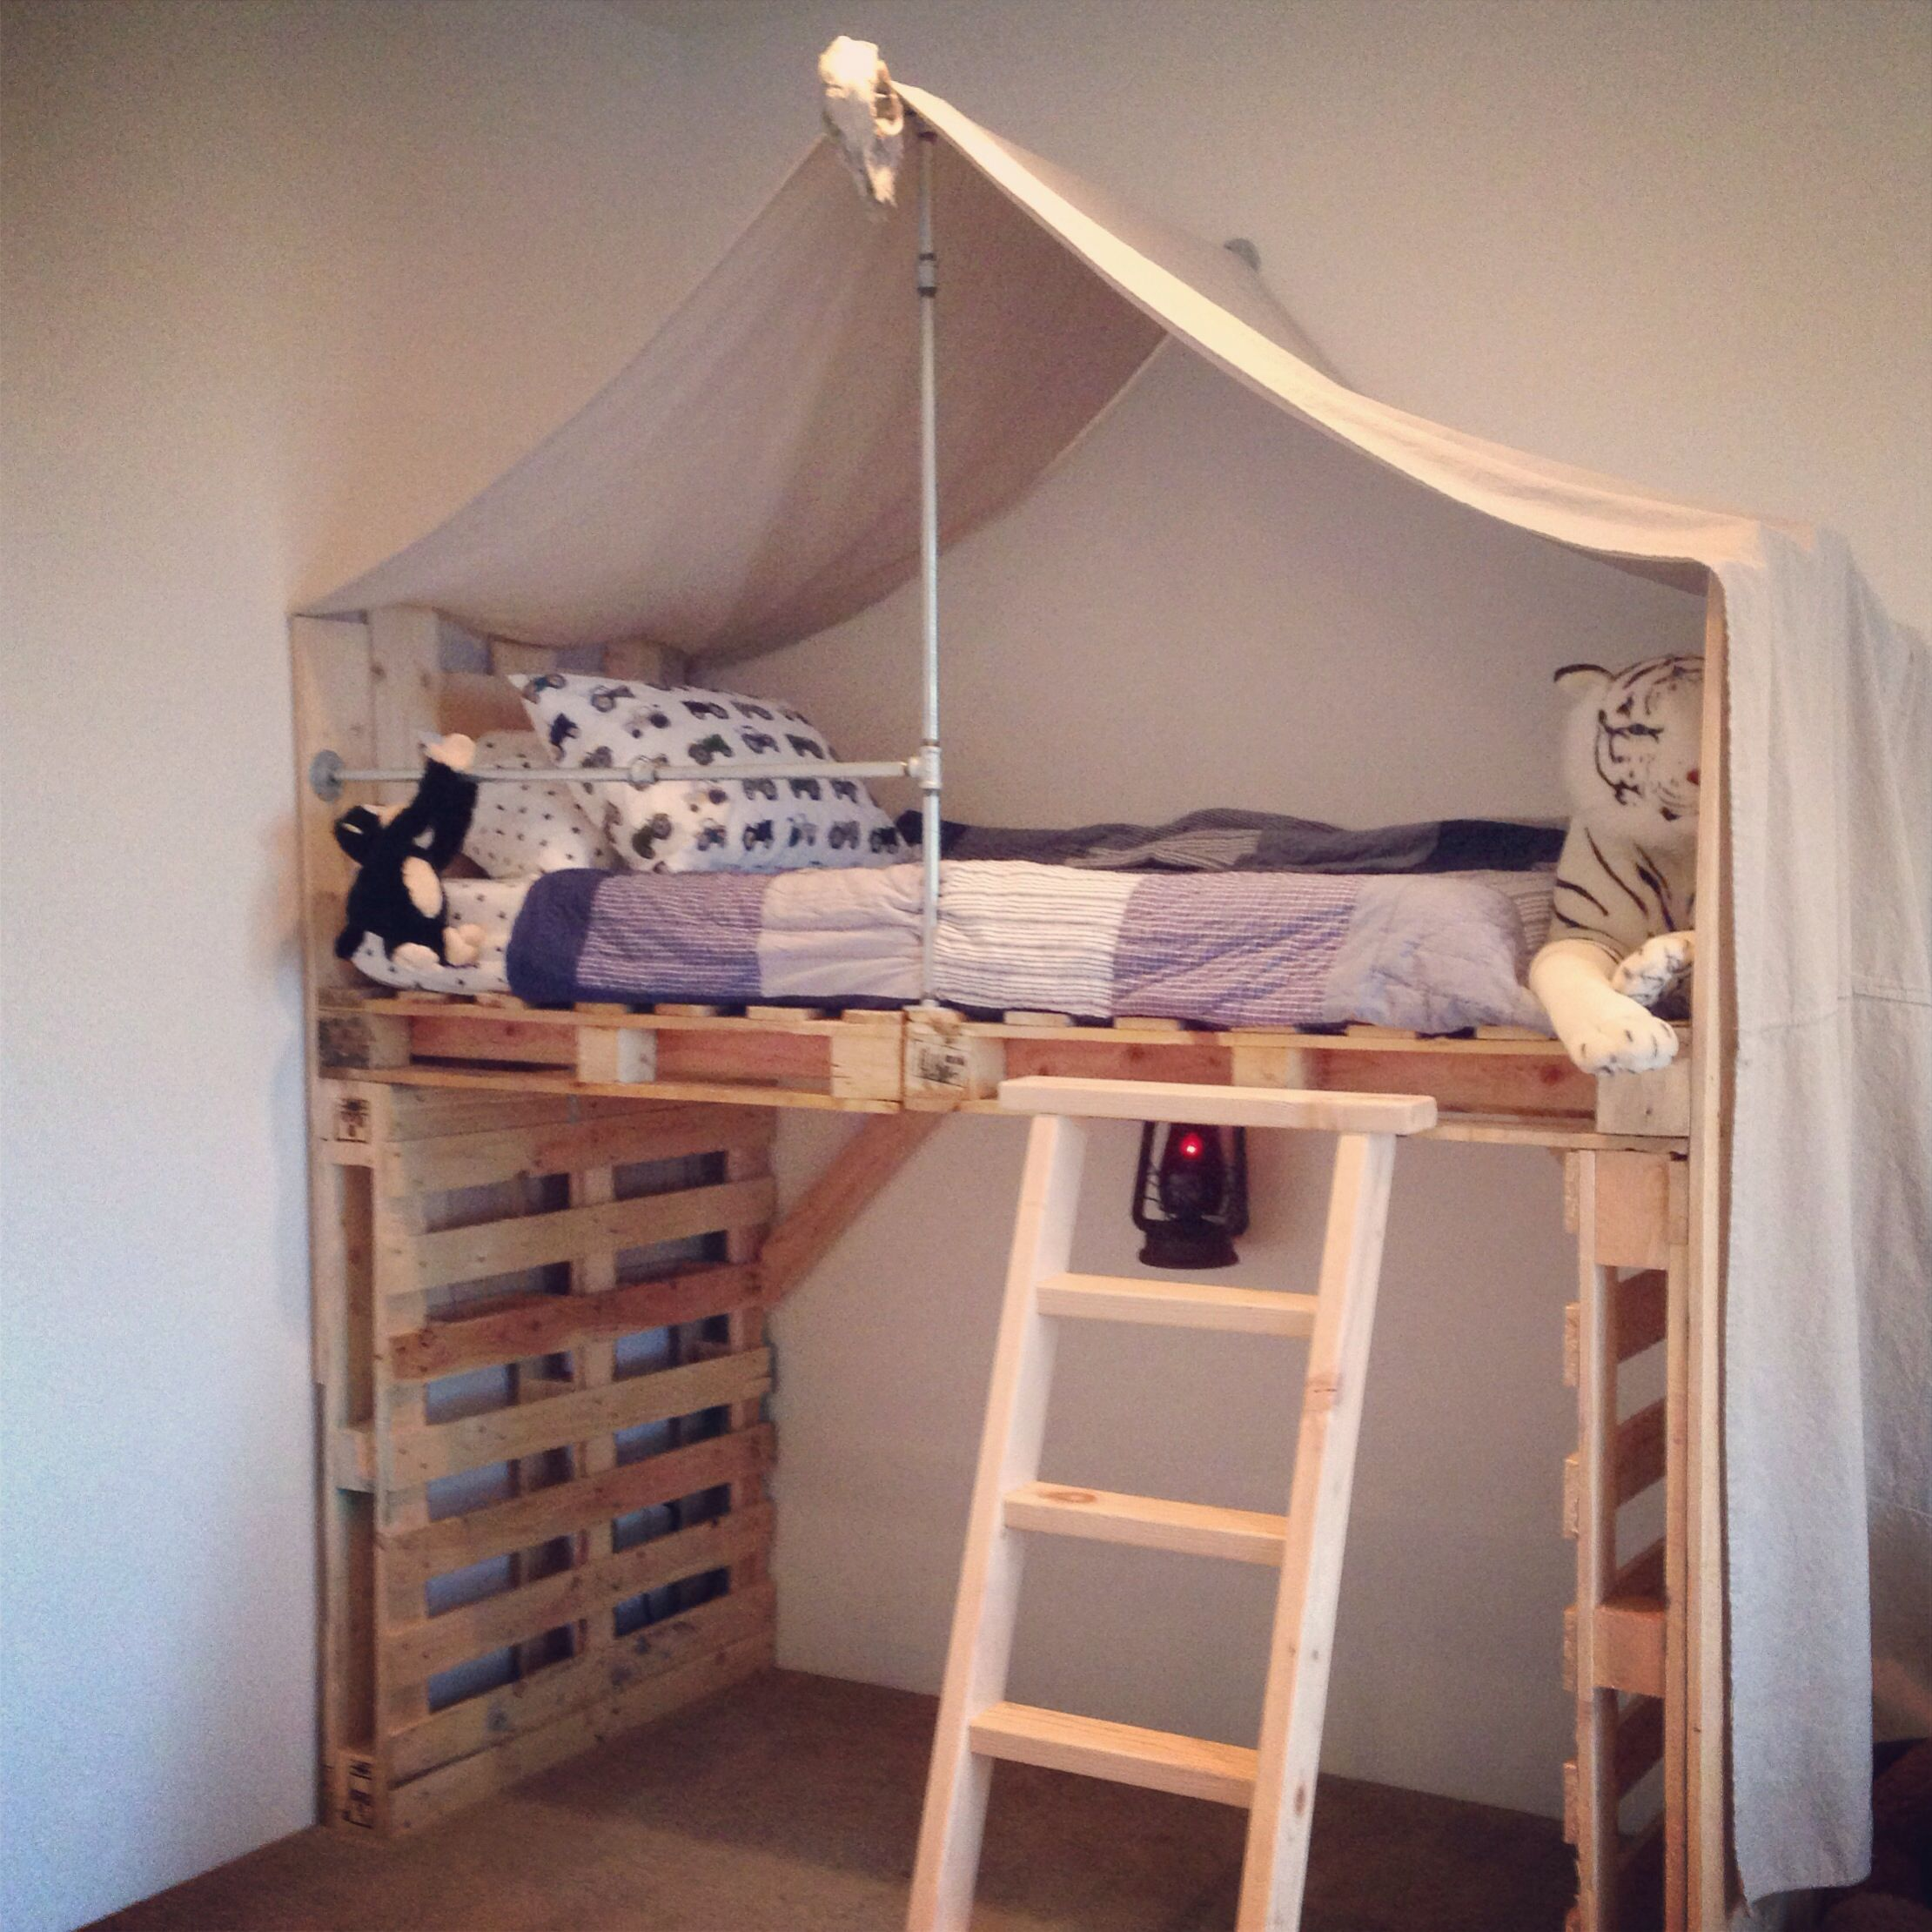 Himmelbett Stoff Top 10 Letti A Casetta Per Bambini Top 10 Treehouse Beds For